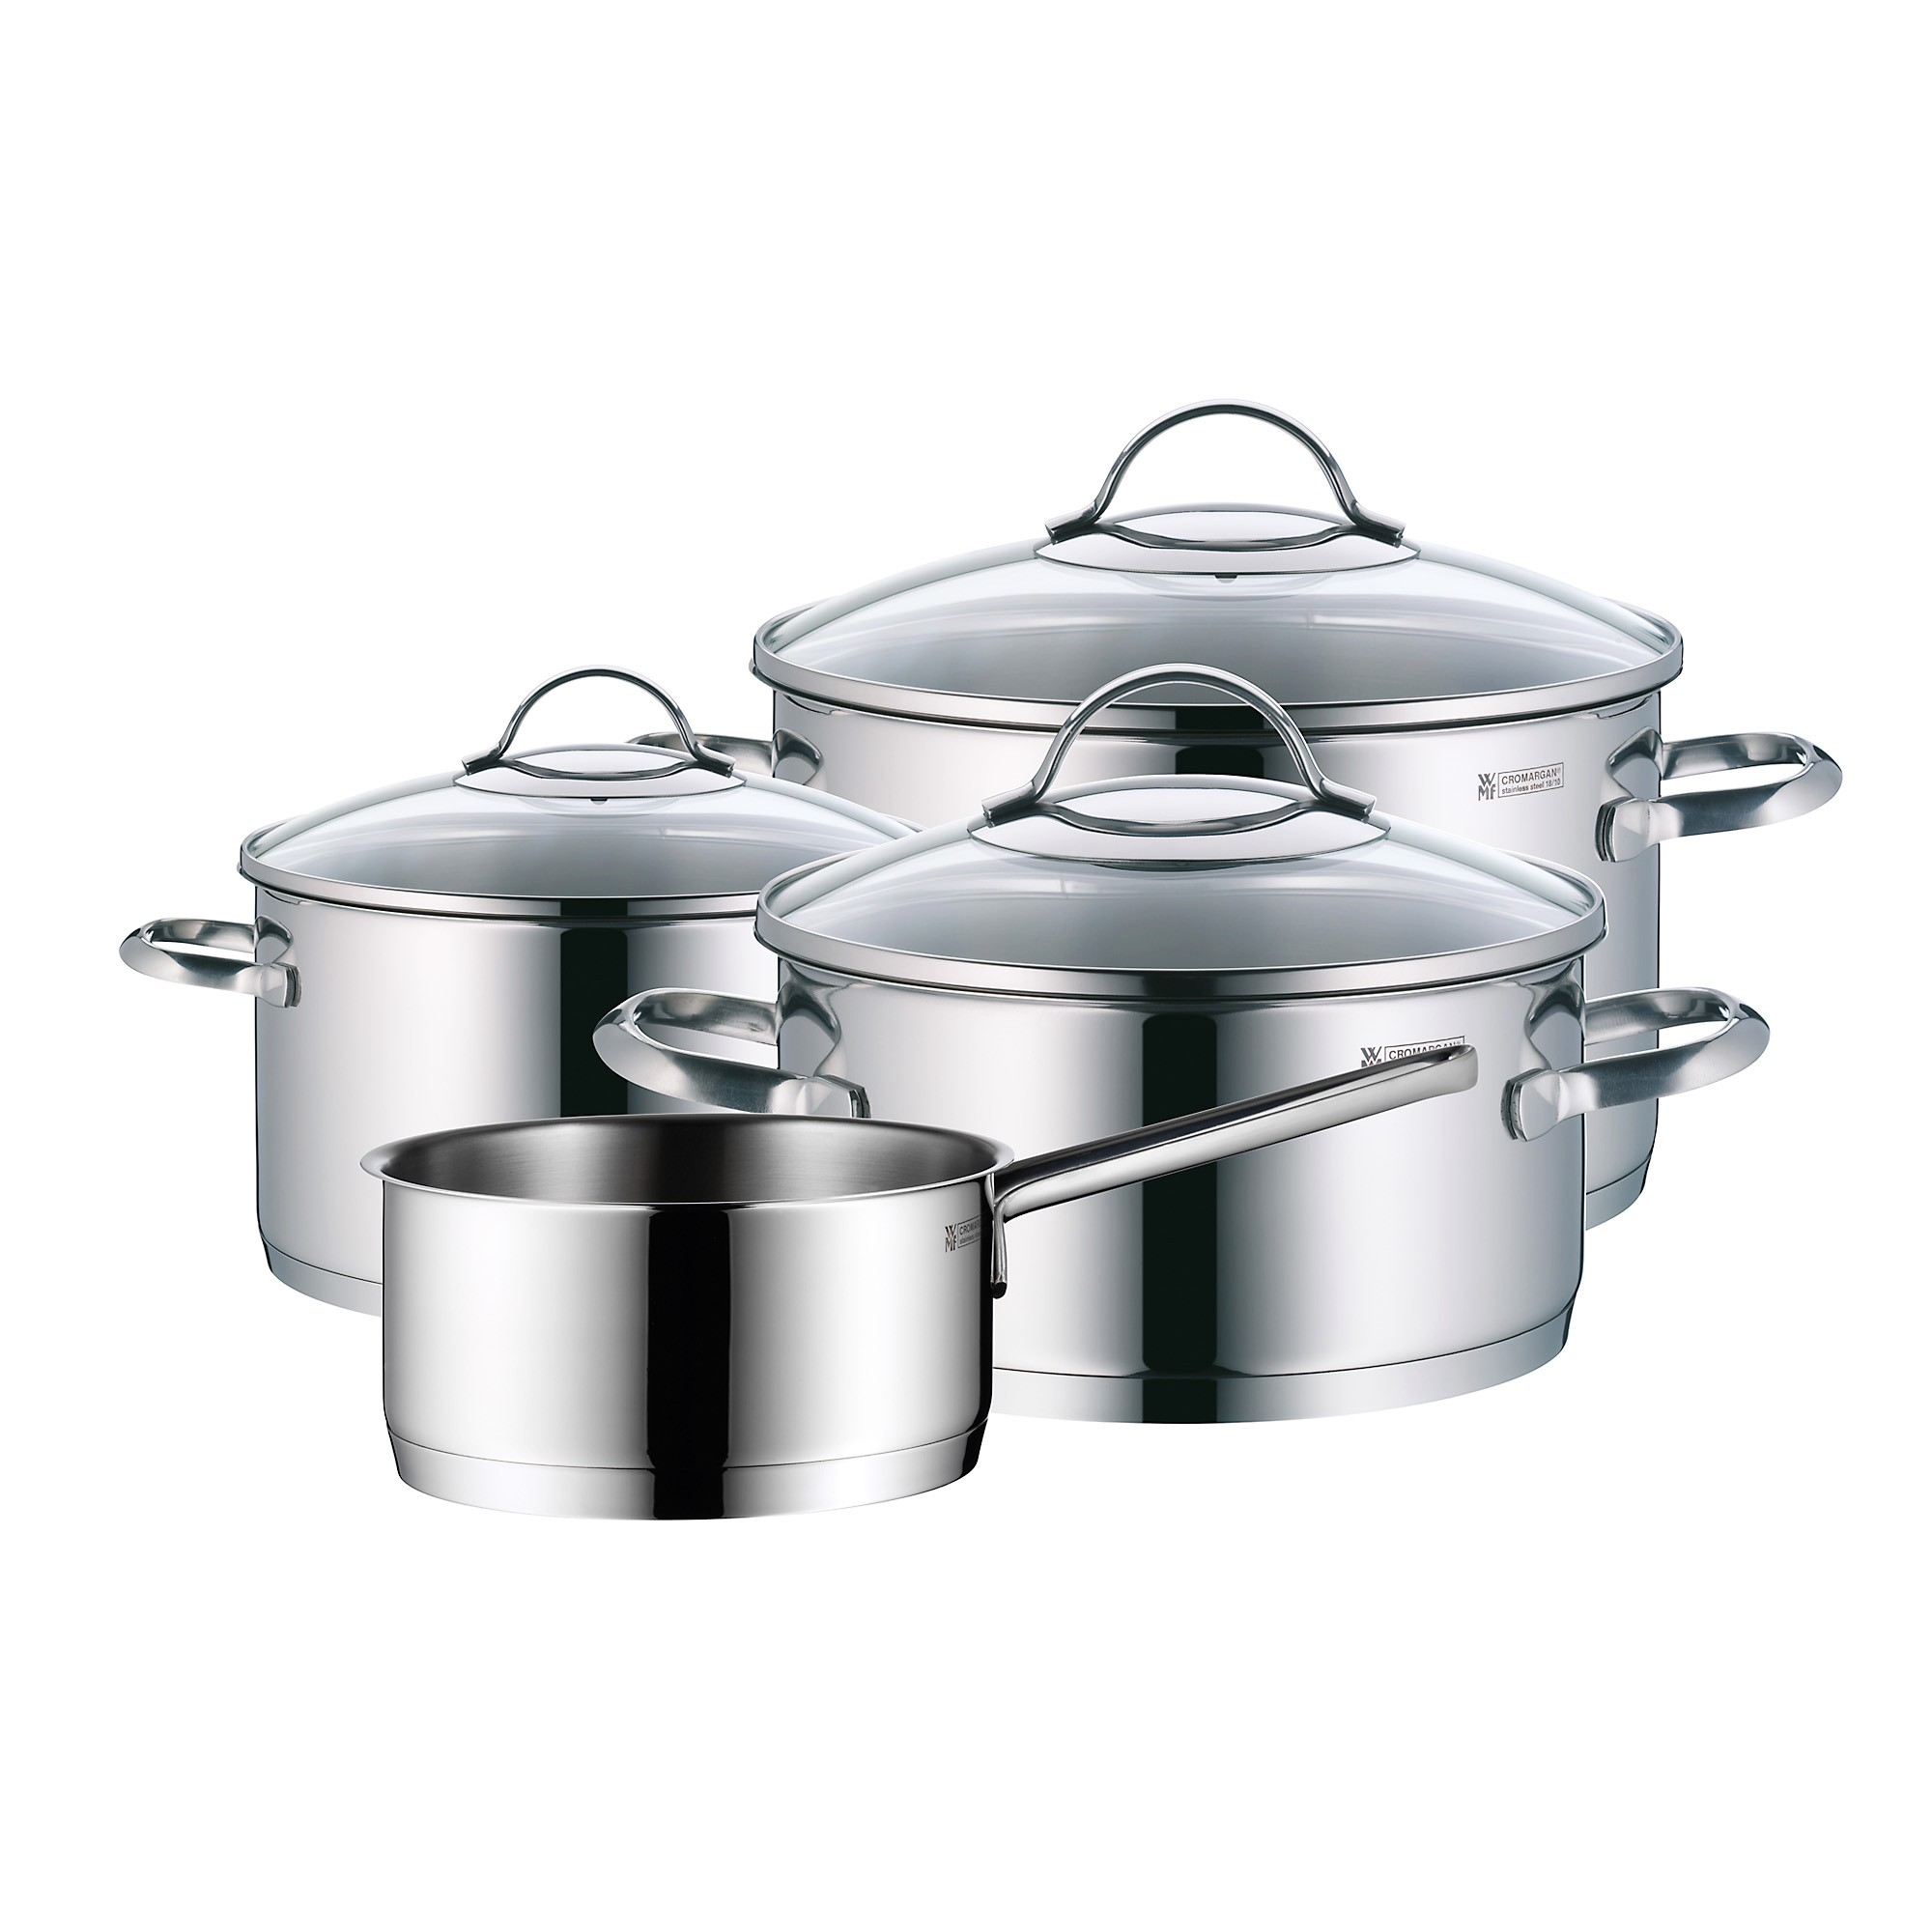 Bộ nồi WMF Cookware PROVENCE PLUS 4 chiếc